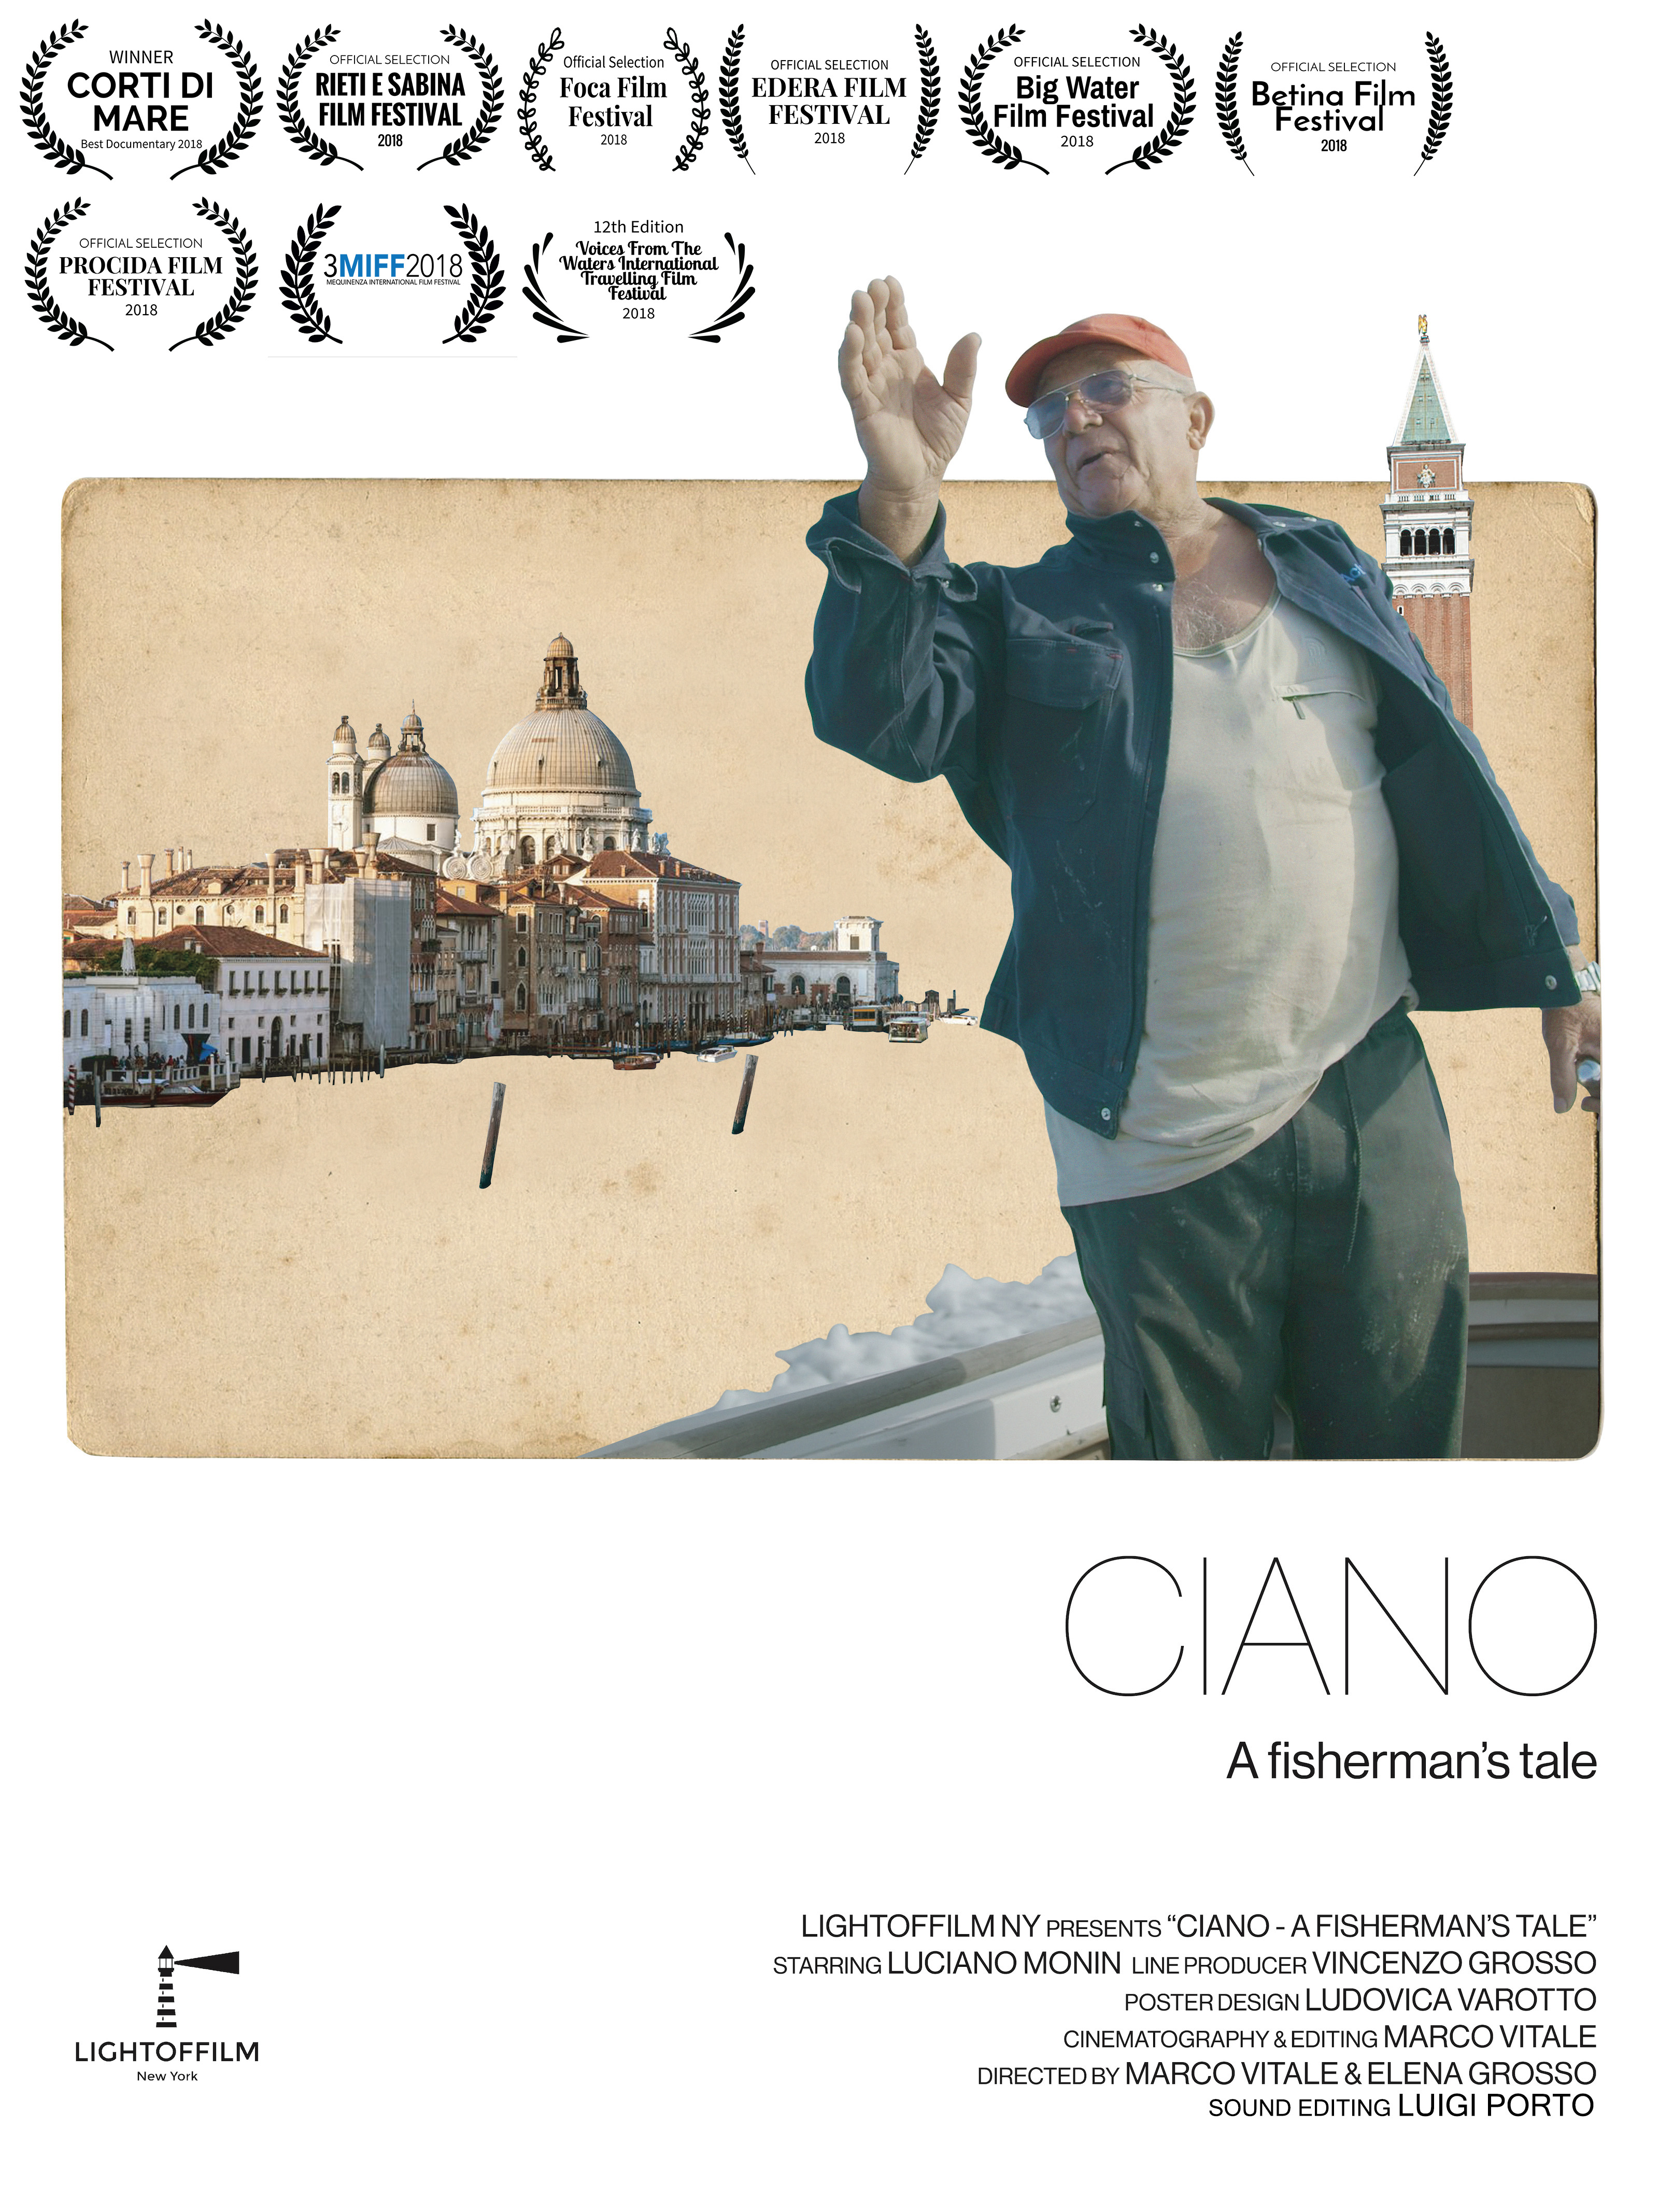 CIANO A FISHERMAN'S TALE